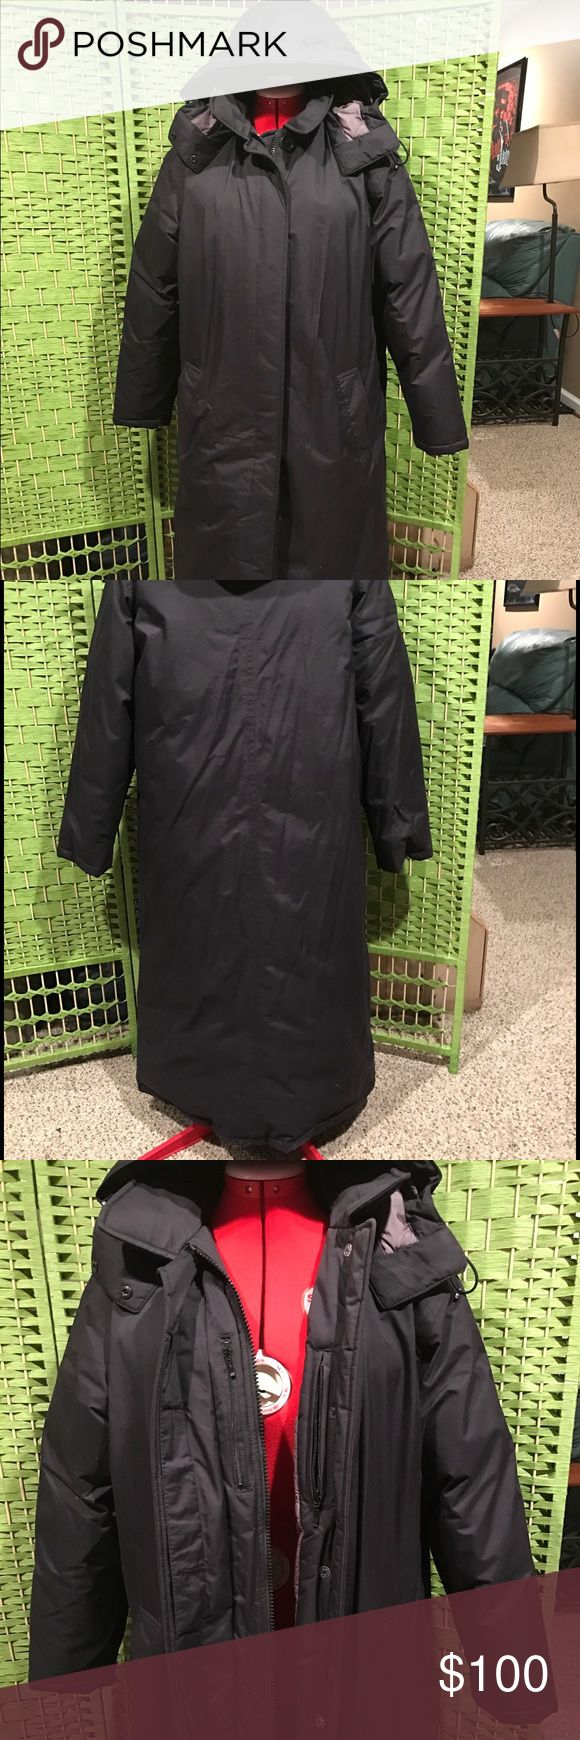 """Lands End Coat Lands End Down Coat, Black, Size XL (14/16), length is long (I'm 5'5"""" and it touches my calf).. brand new without tags, bought at the outlets but never wore it.. has 2-way zipper and buttons, snap off removable hood, 4 pockets inside and 2 pockets outside Lands' End Jackets & Coats Puffers"""